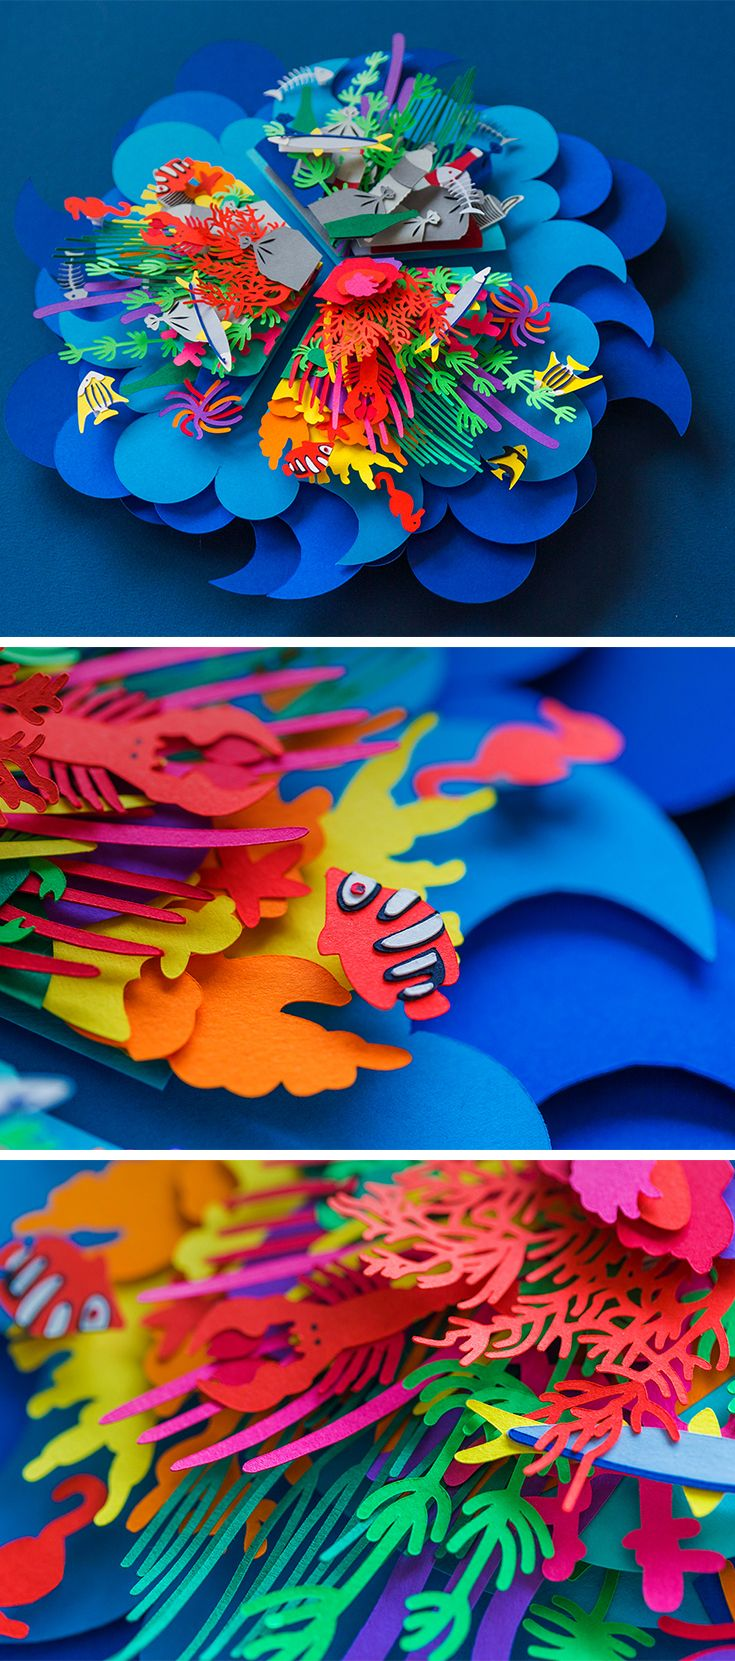 Click for more pics! | Colorful Layered Paper Cut #Poster Depicting Ocean Pollution by Aline Houdé-Diebolt #paperart